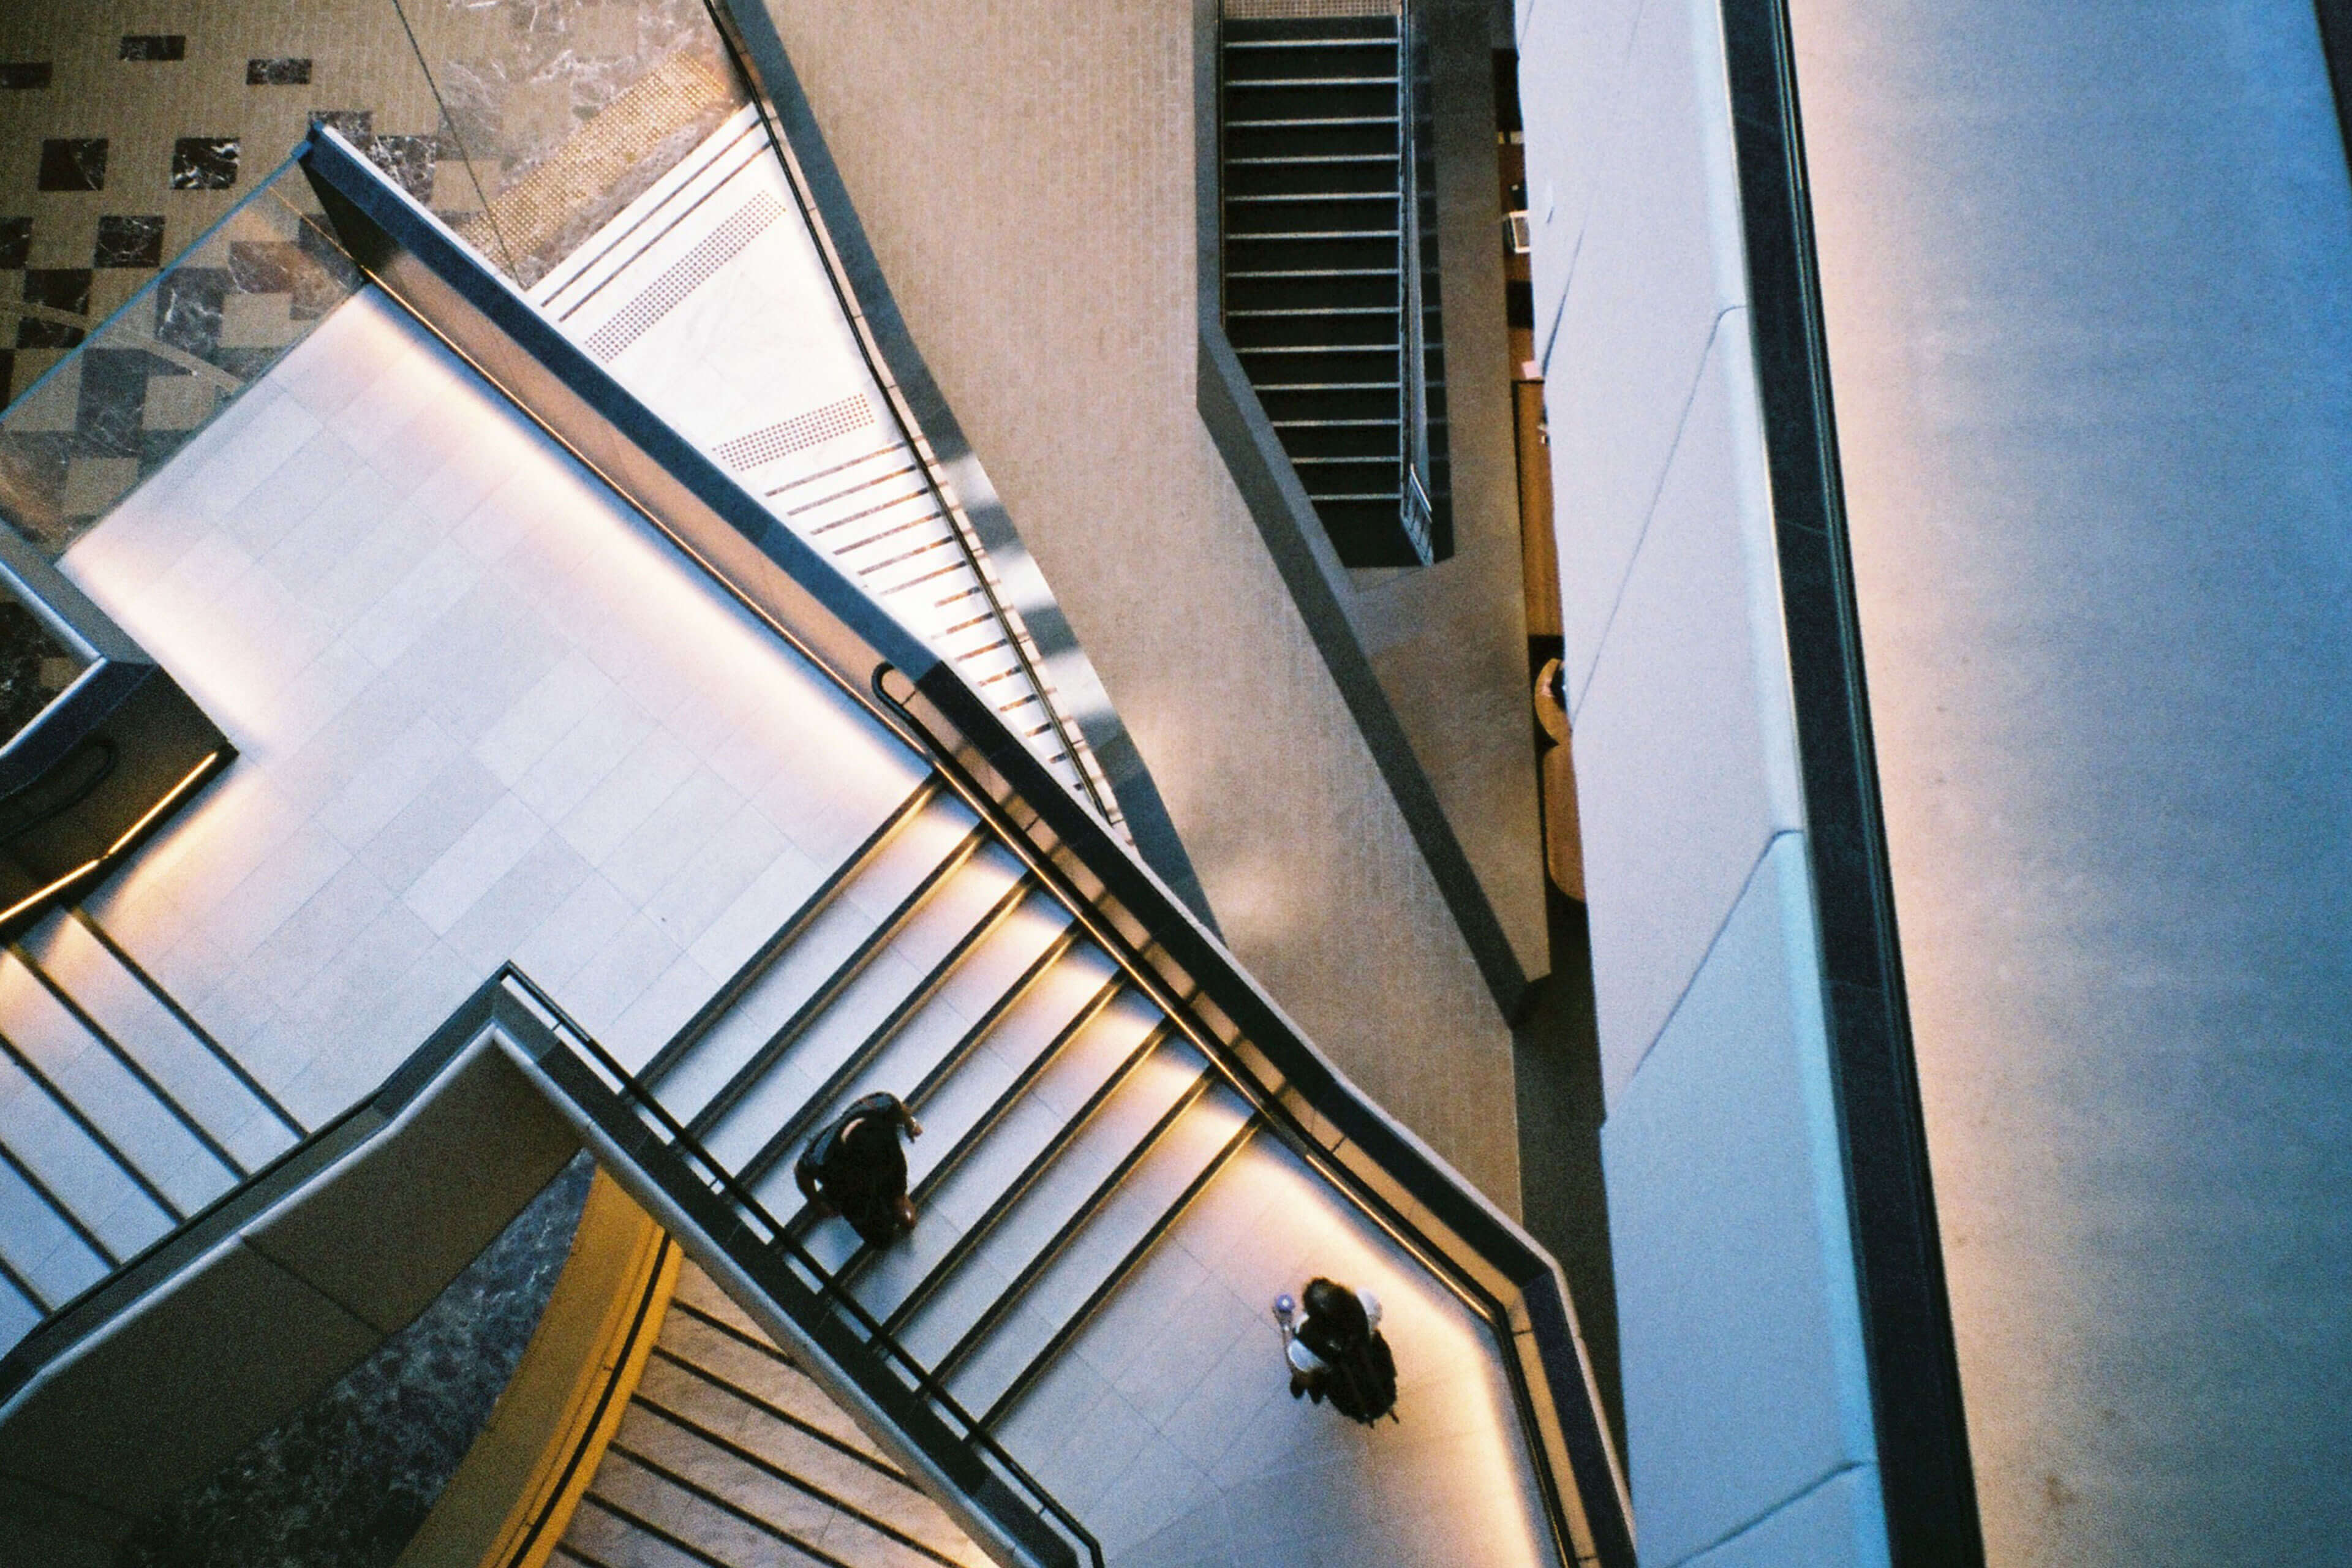 Abstract staircase with passersby